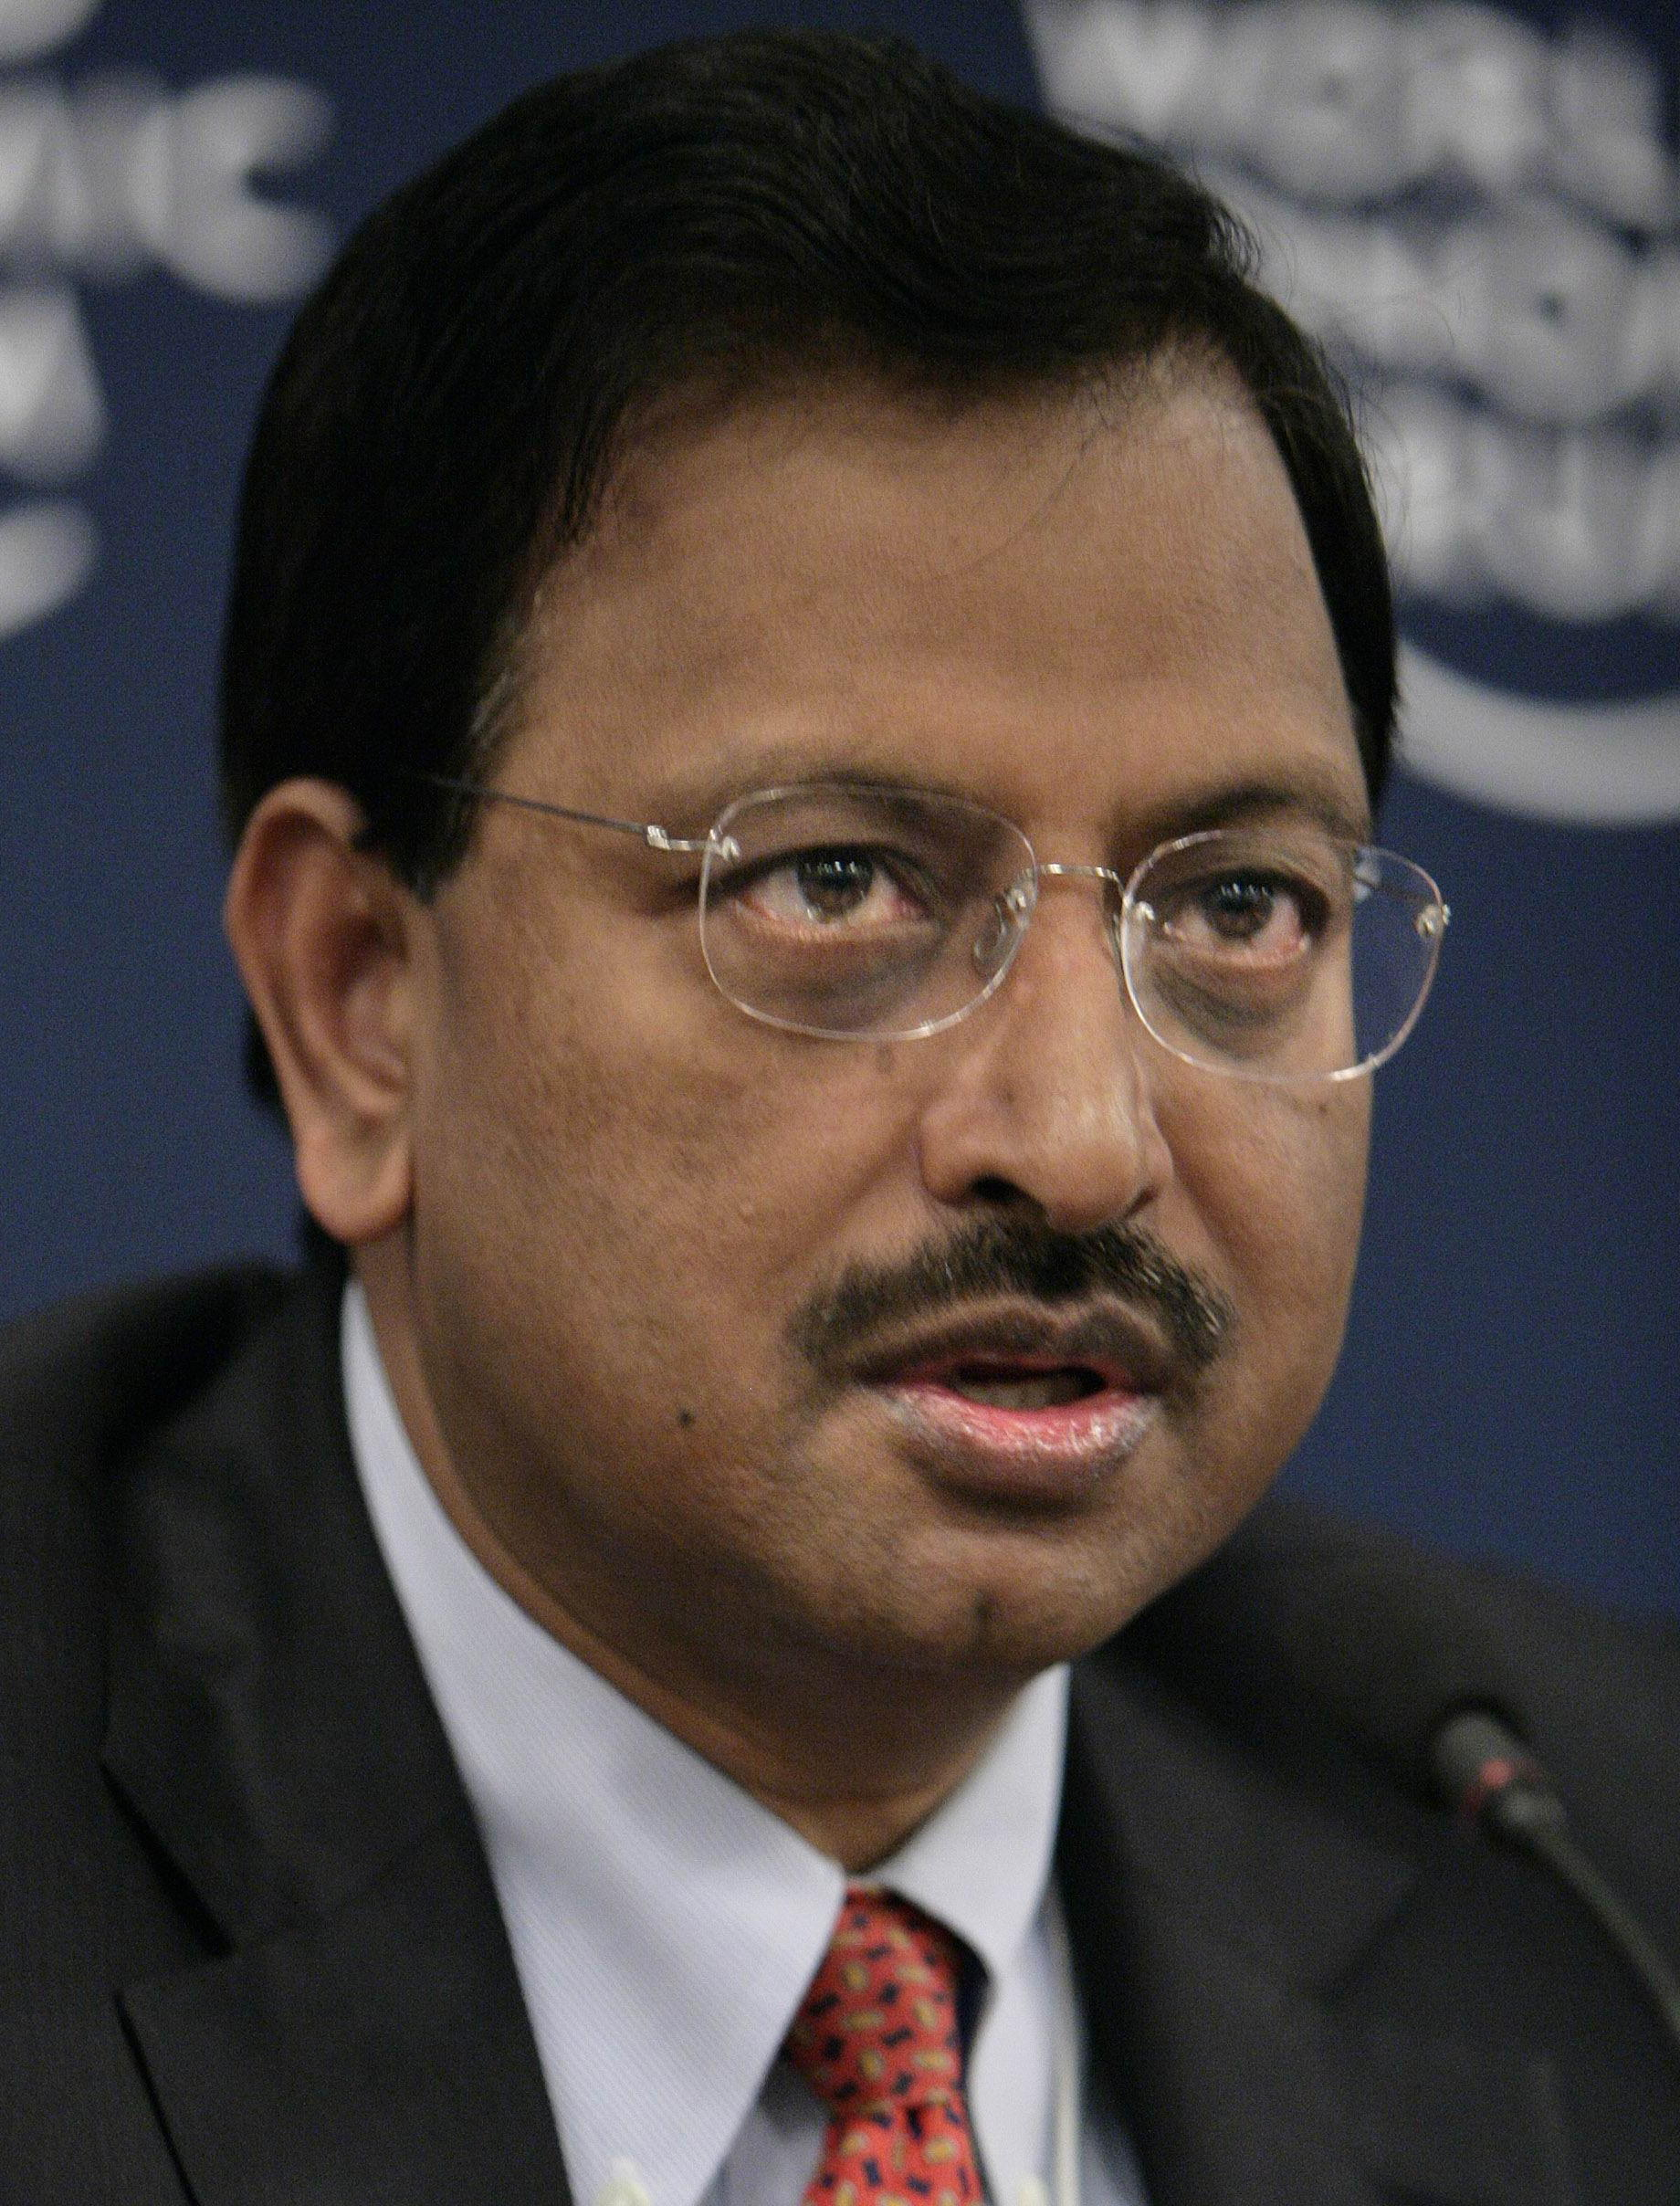 Satyam S Raju Brothers Get 7 Years In Jail For Fraud